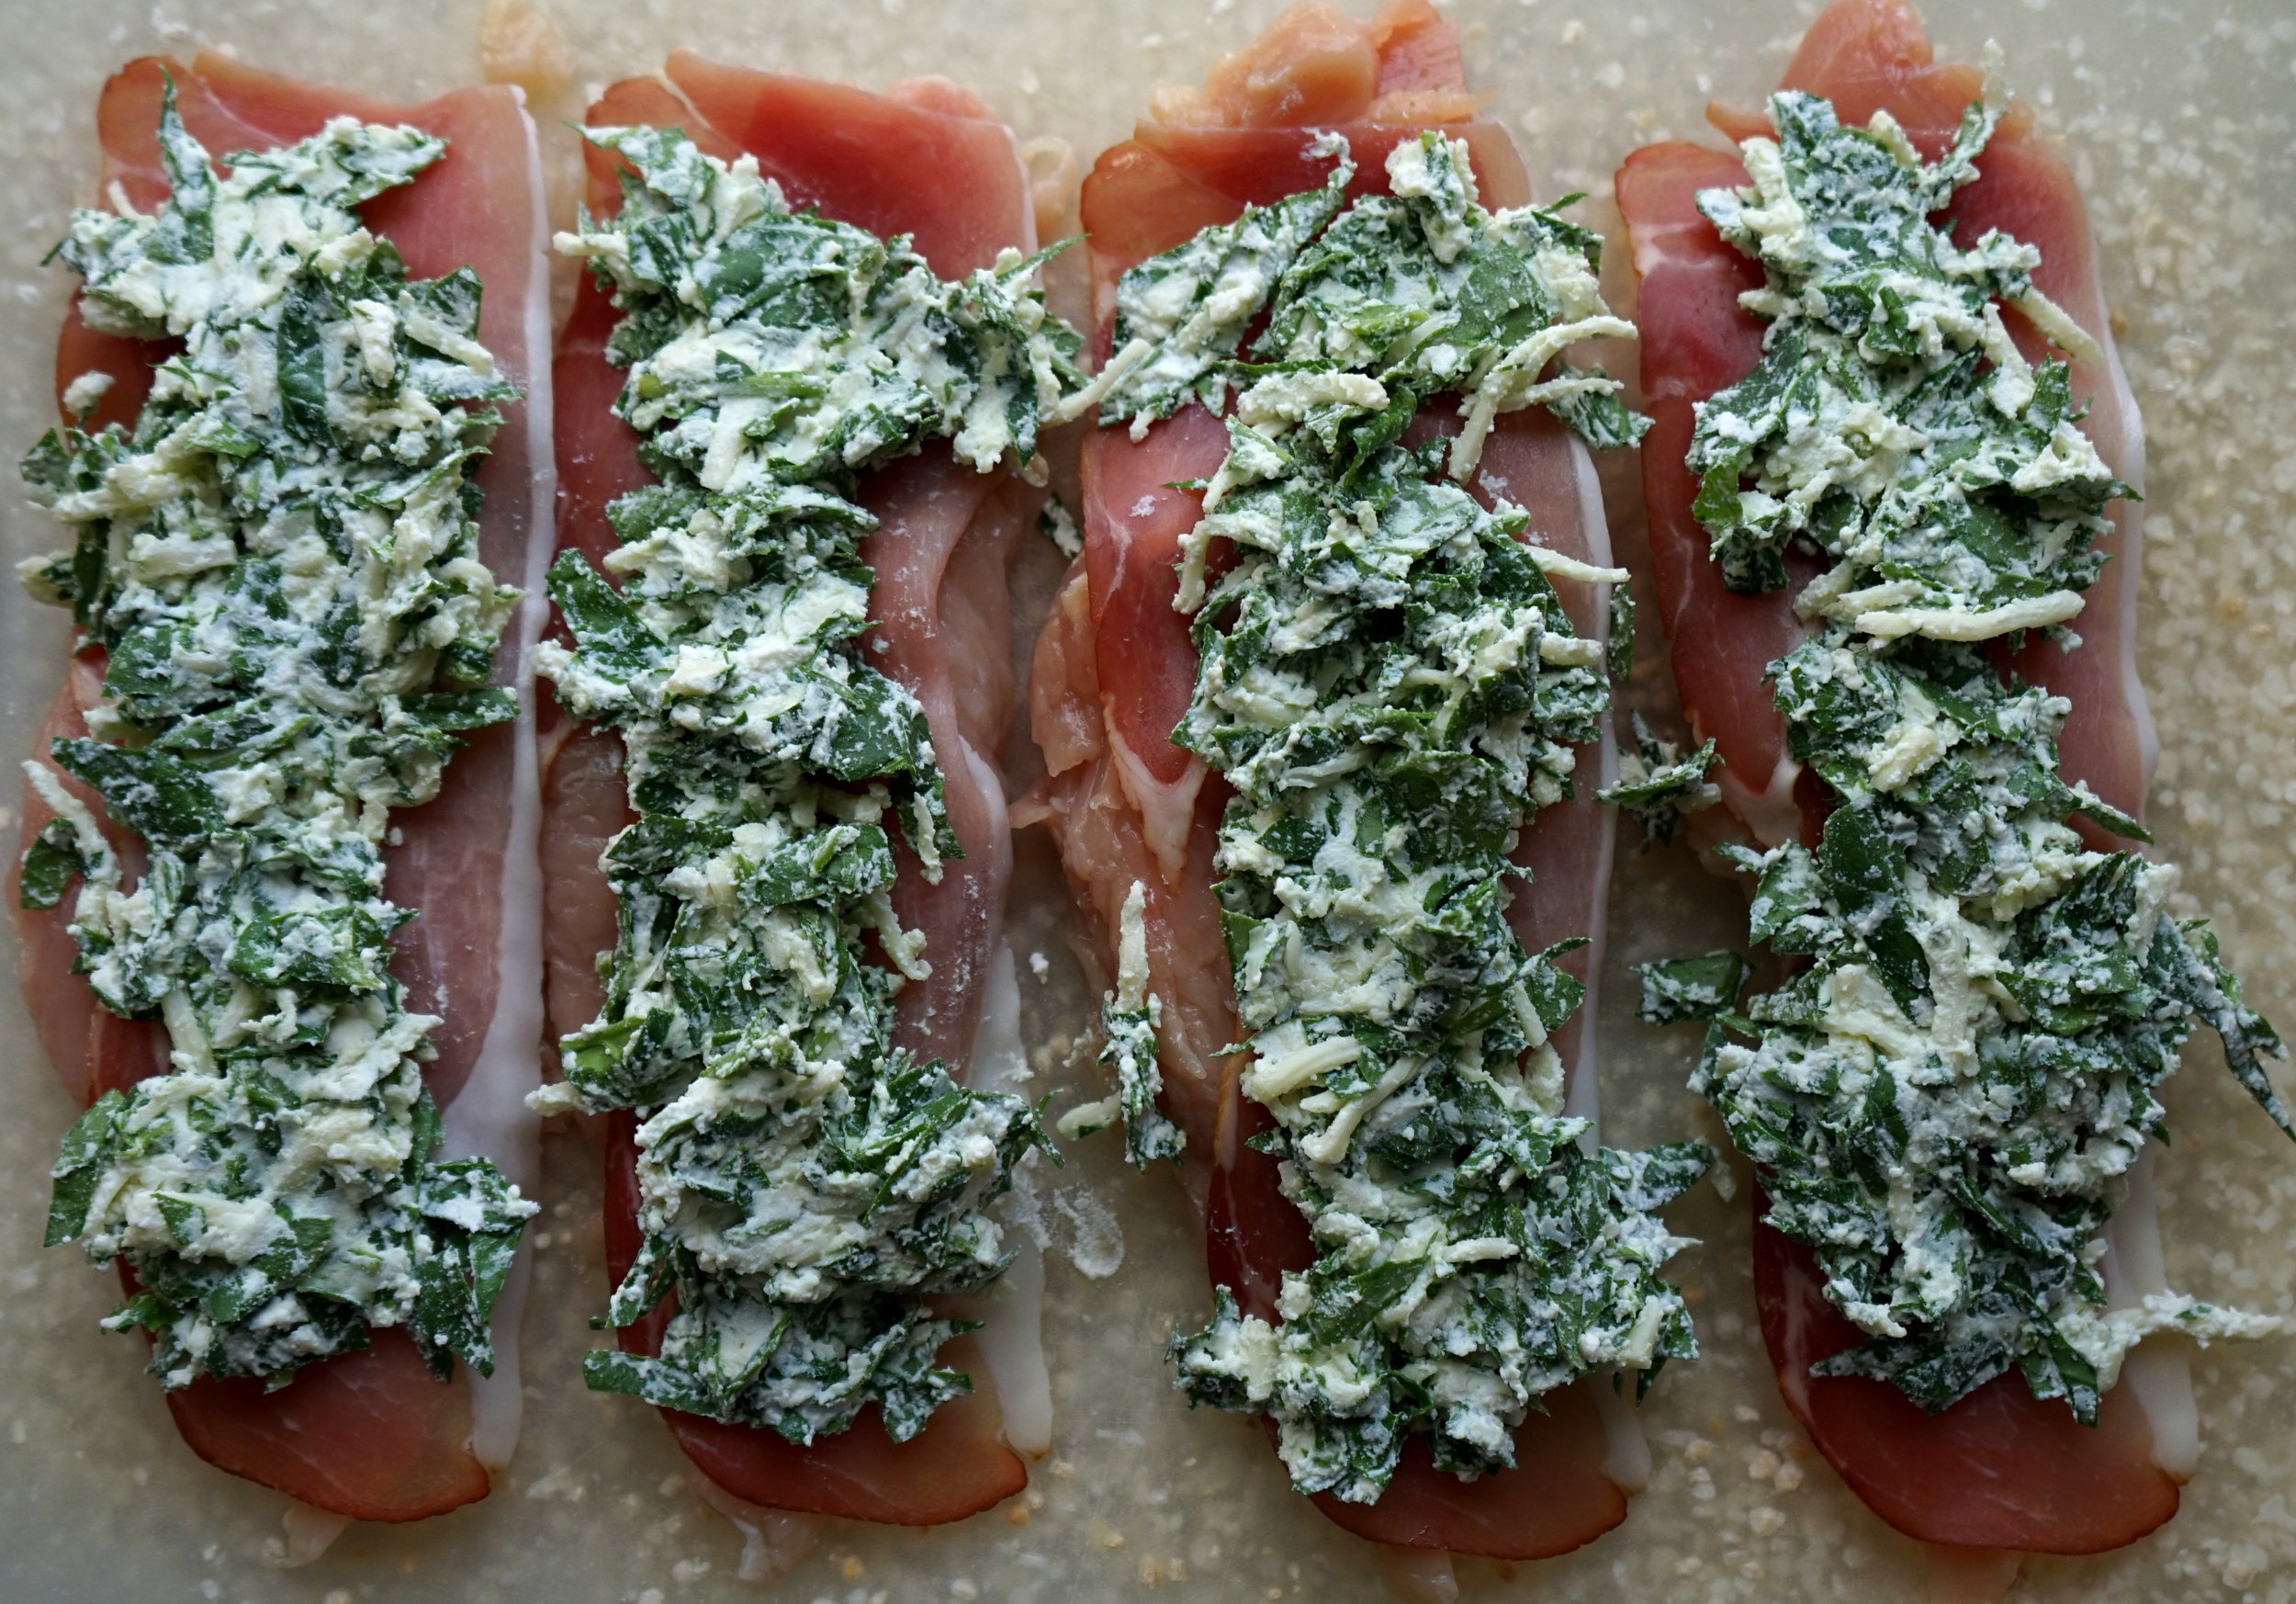 Chicken and prosciutto pinwheels are a delicious weeknight dinner or meal prep option. With creamy cheese and salty prosciutto stuffed inside some chicken breast it makes for a comforting dinner.